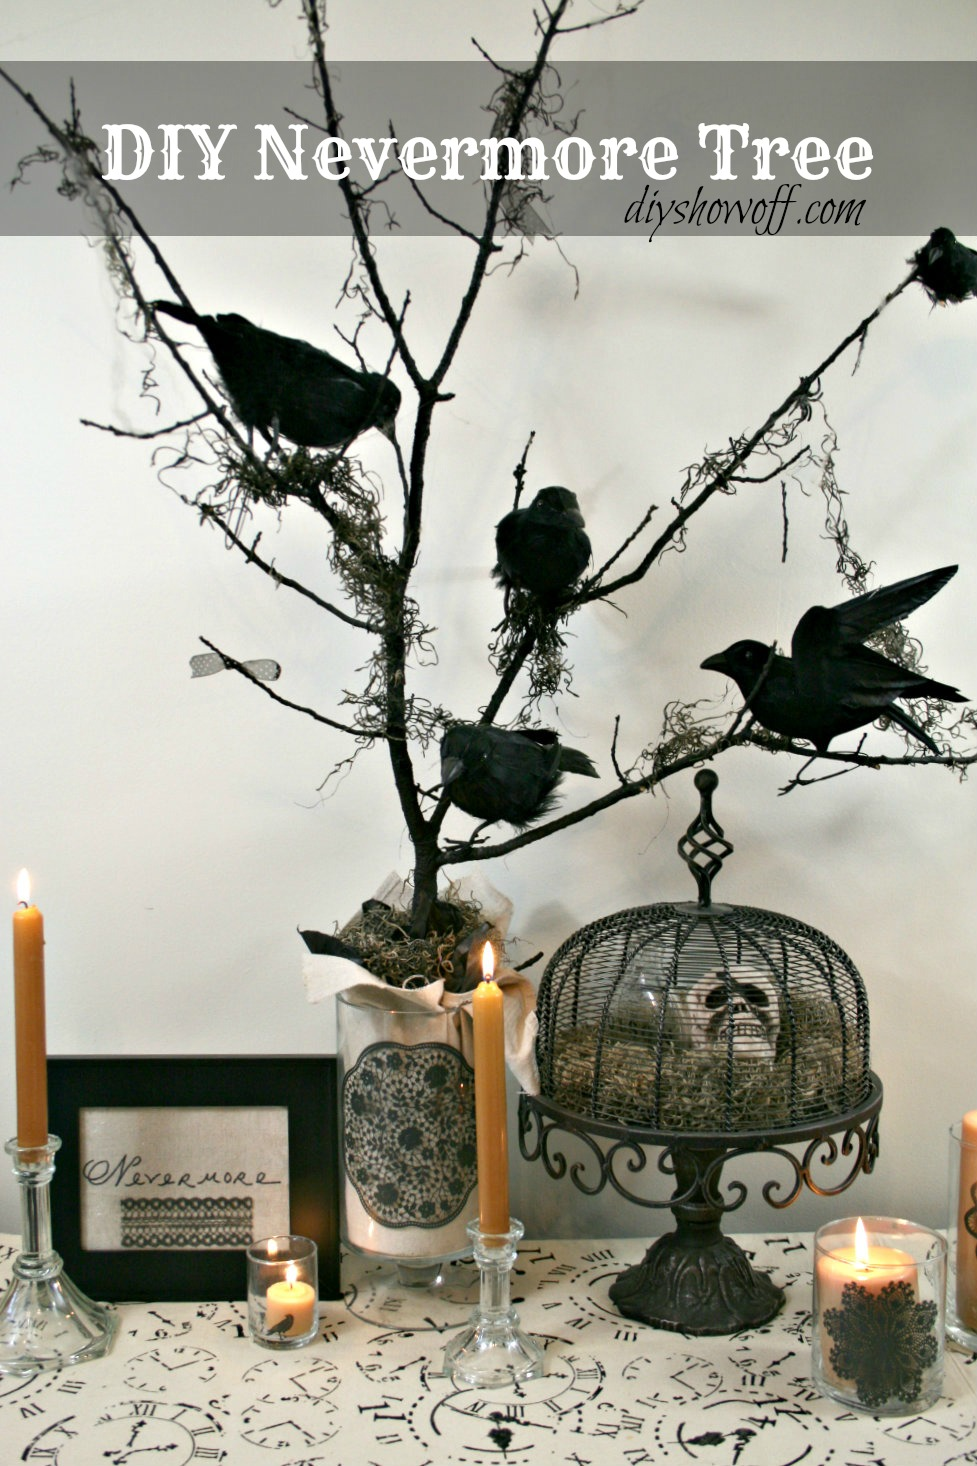 Diy halloween nevermore tree decordiy show off diy decorating diy halloween nevermore tree solutioingenieria Choice Image